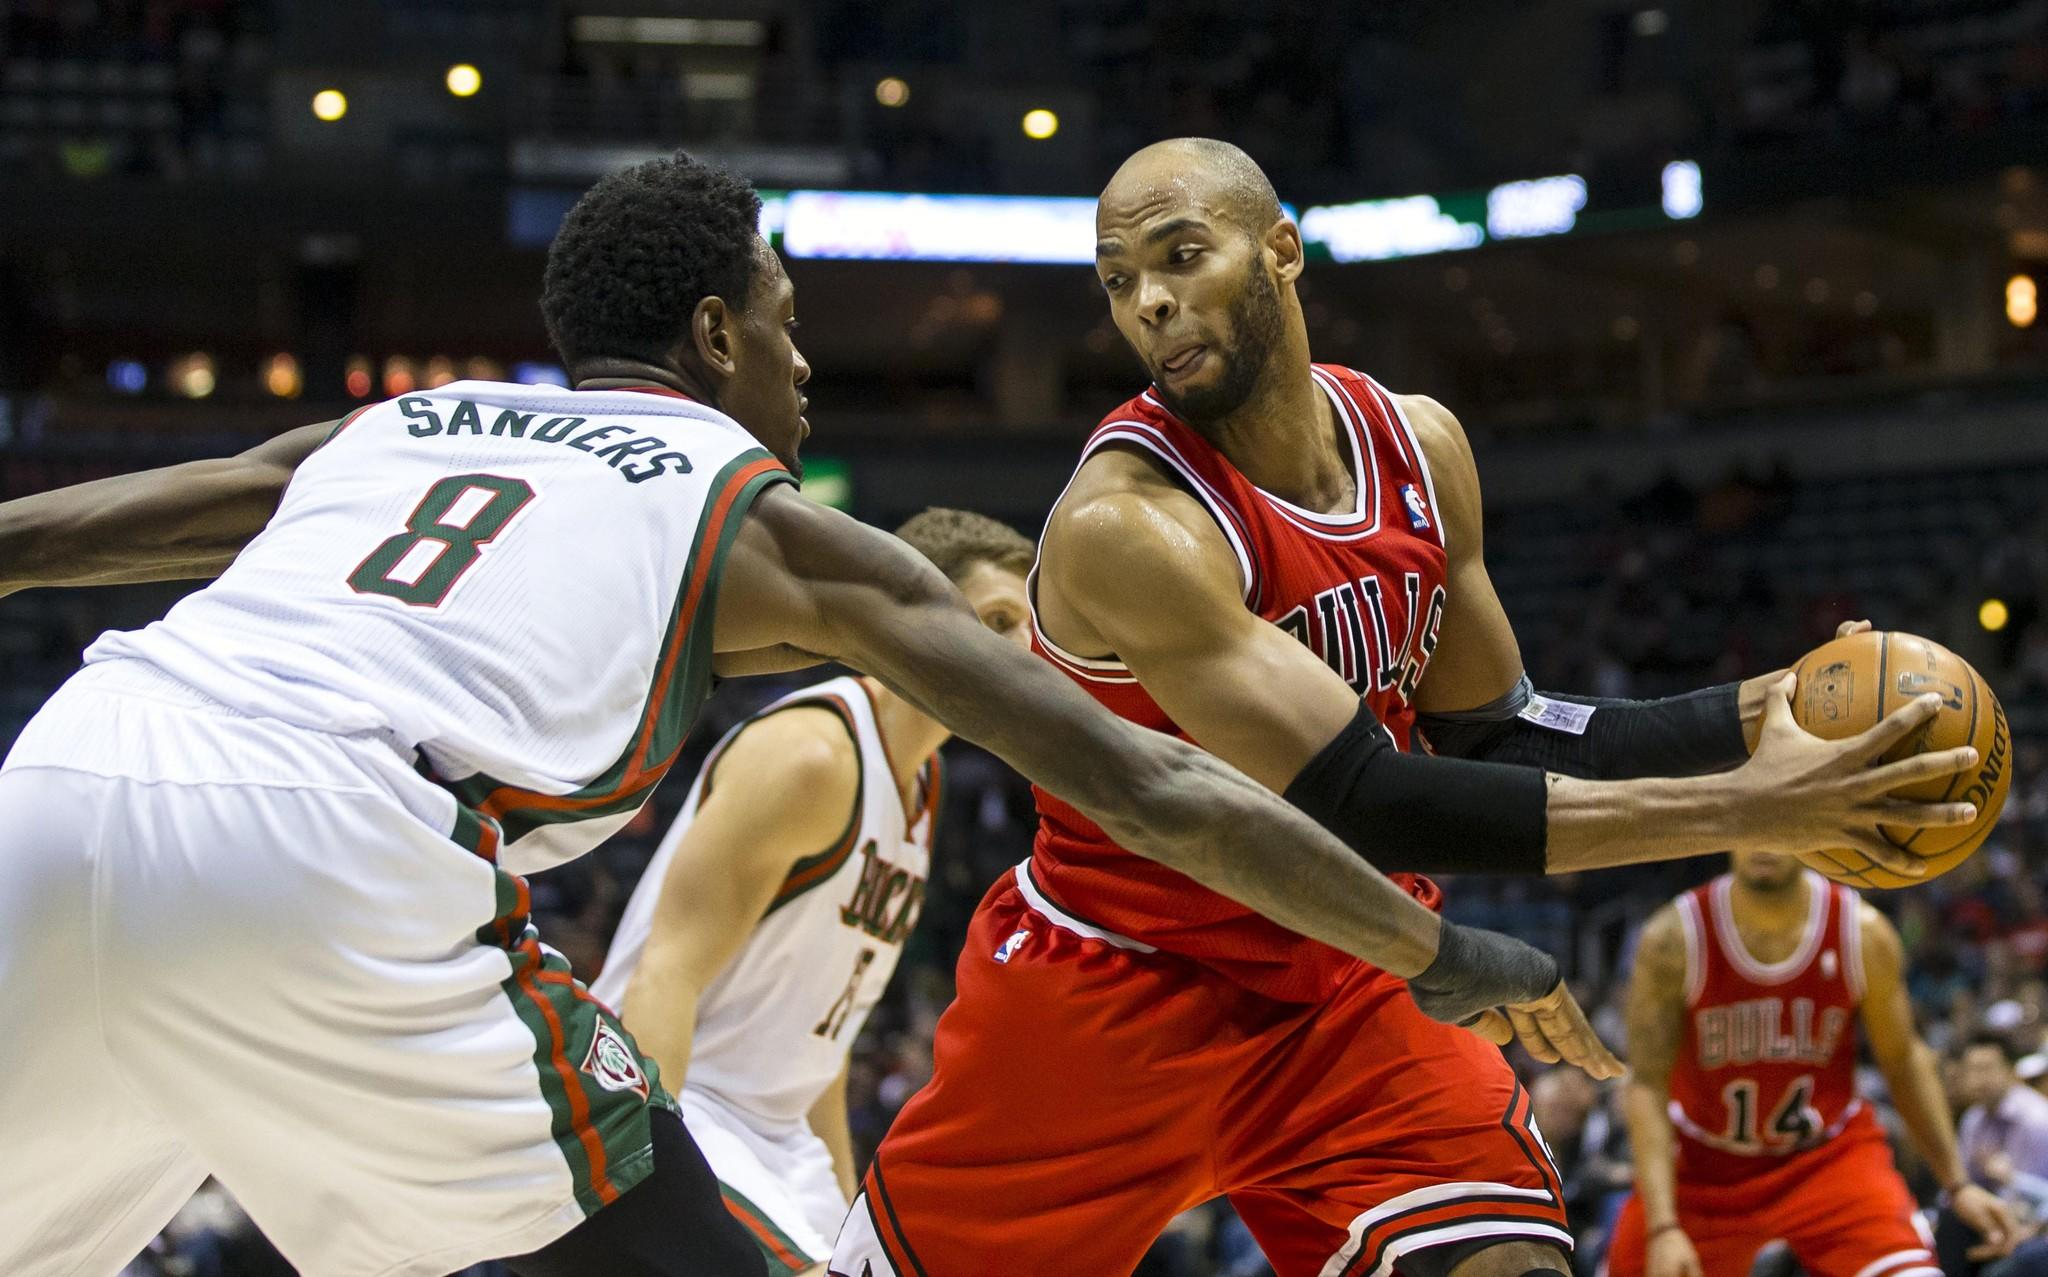 Bulls forward Taj Gibson makes a move on Bucks center Larry Sanders.